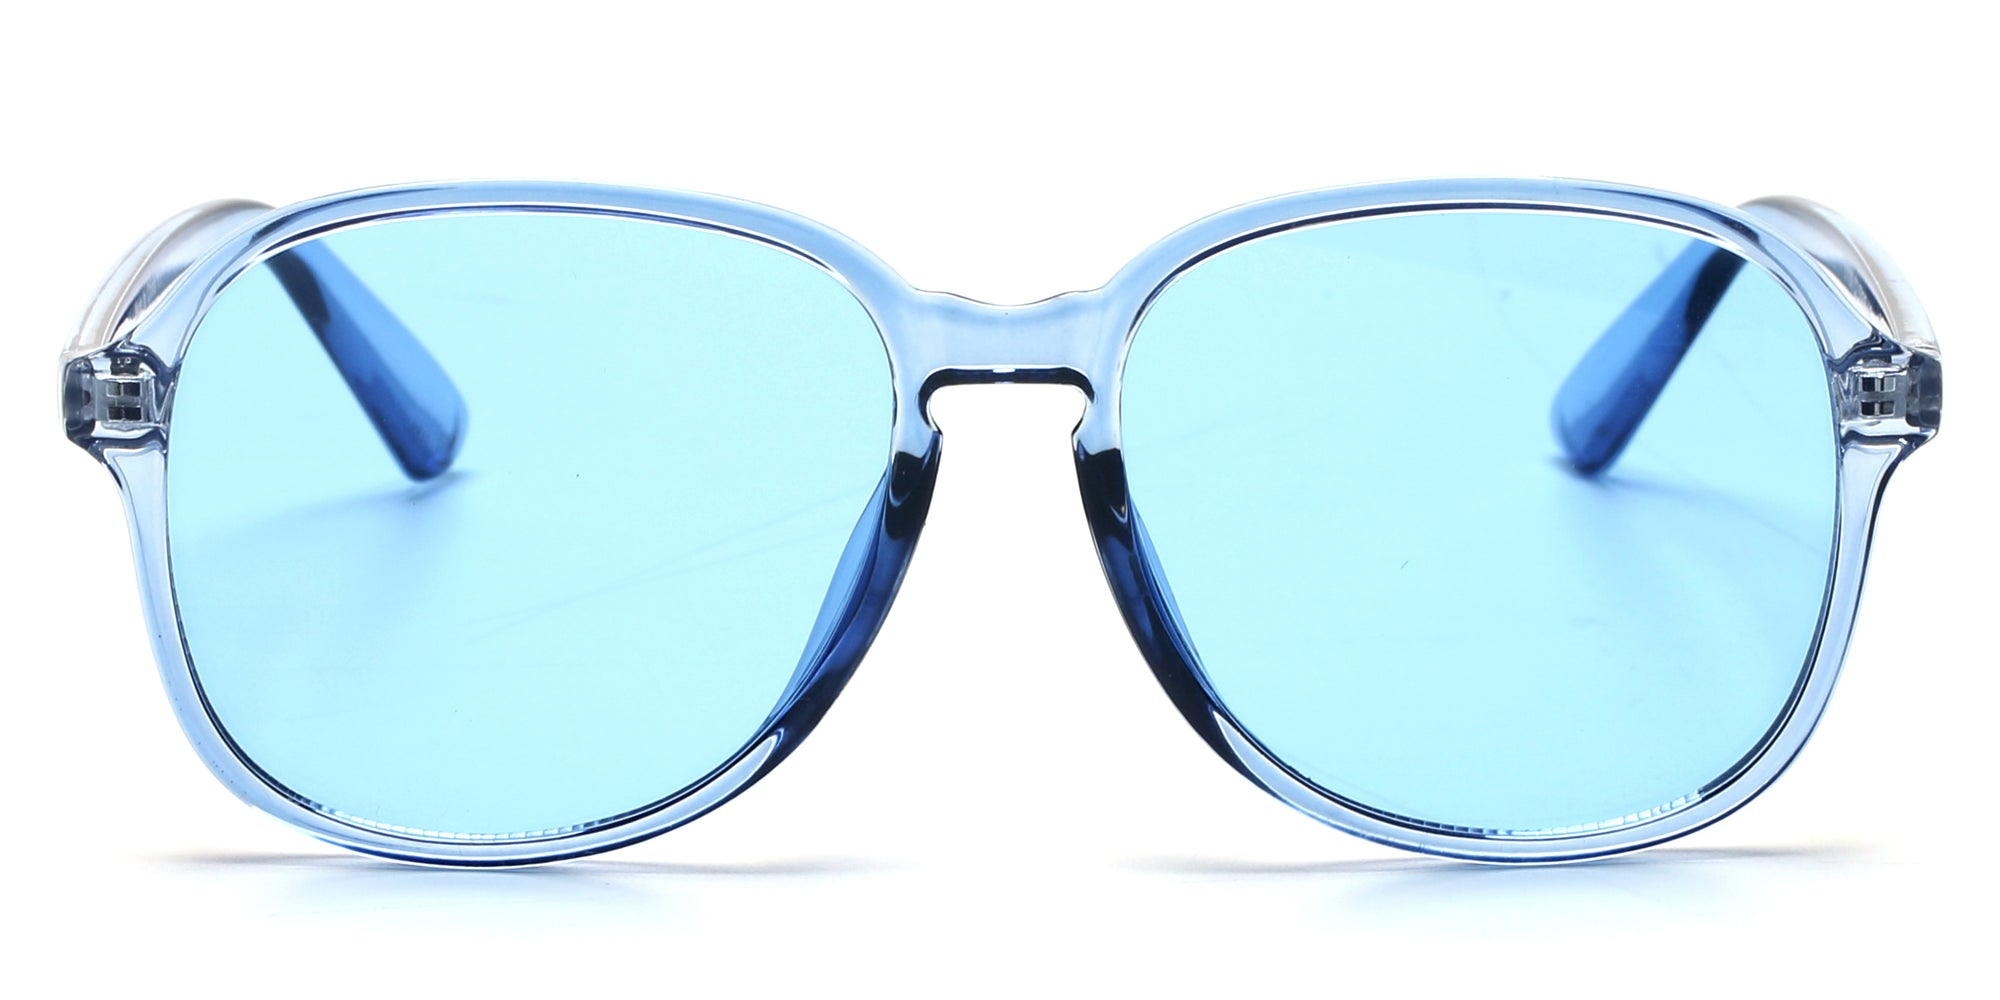 S1109 - Women Retro Round Oversized Fashion Sunglasses - Wholesale Sunglasses and glasses